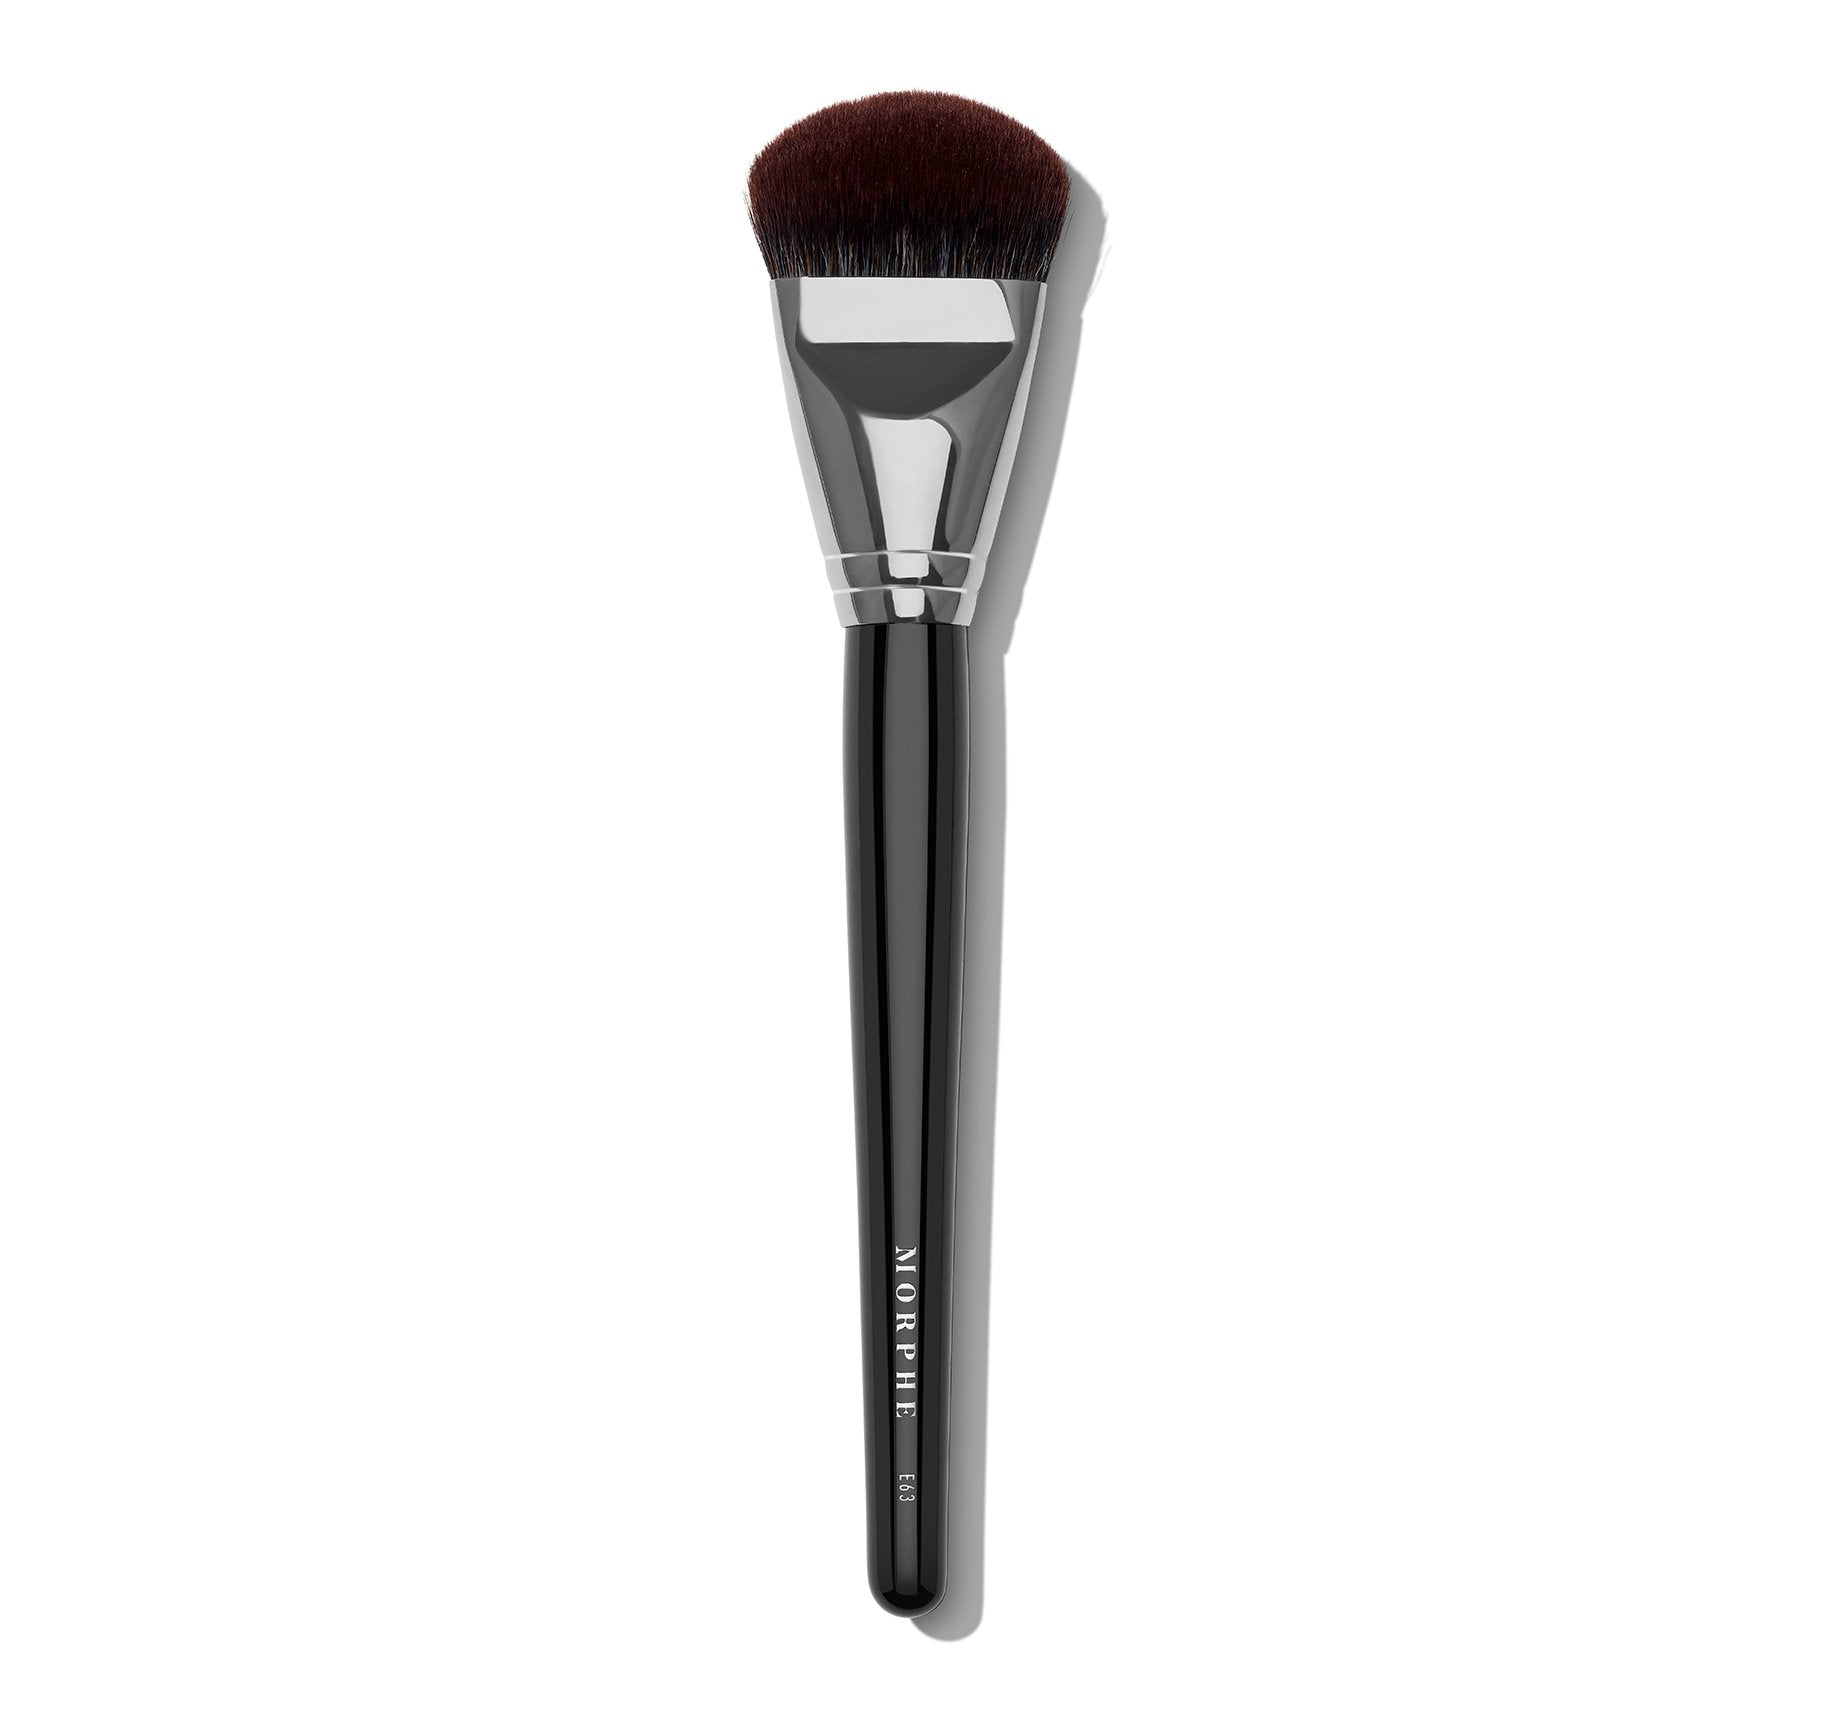 E63 WIDE ANGLE FOUNDATION BRUSH, view larger image